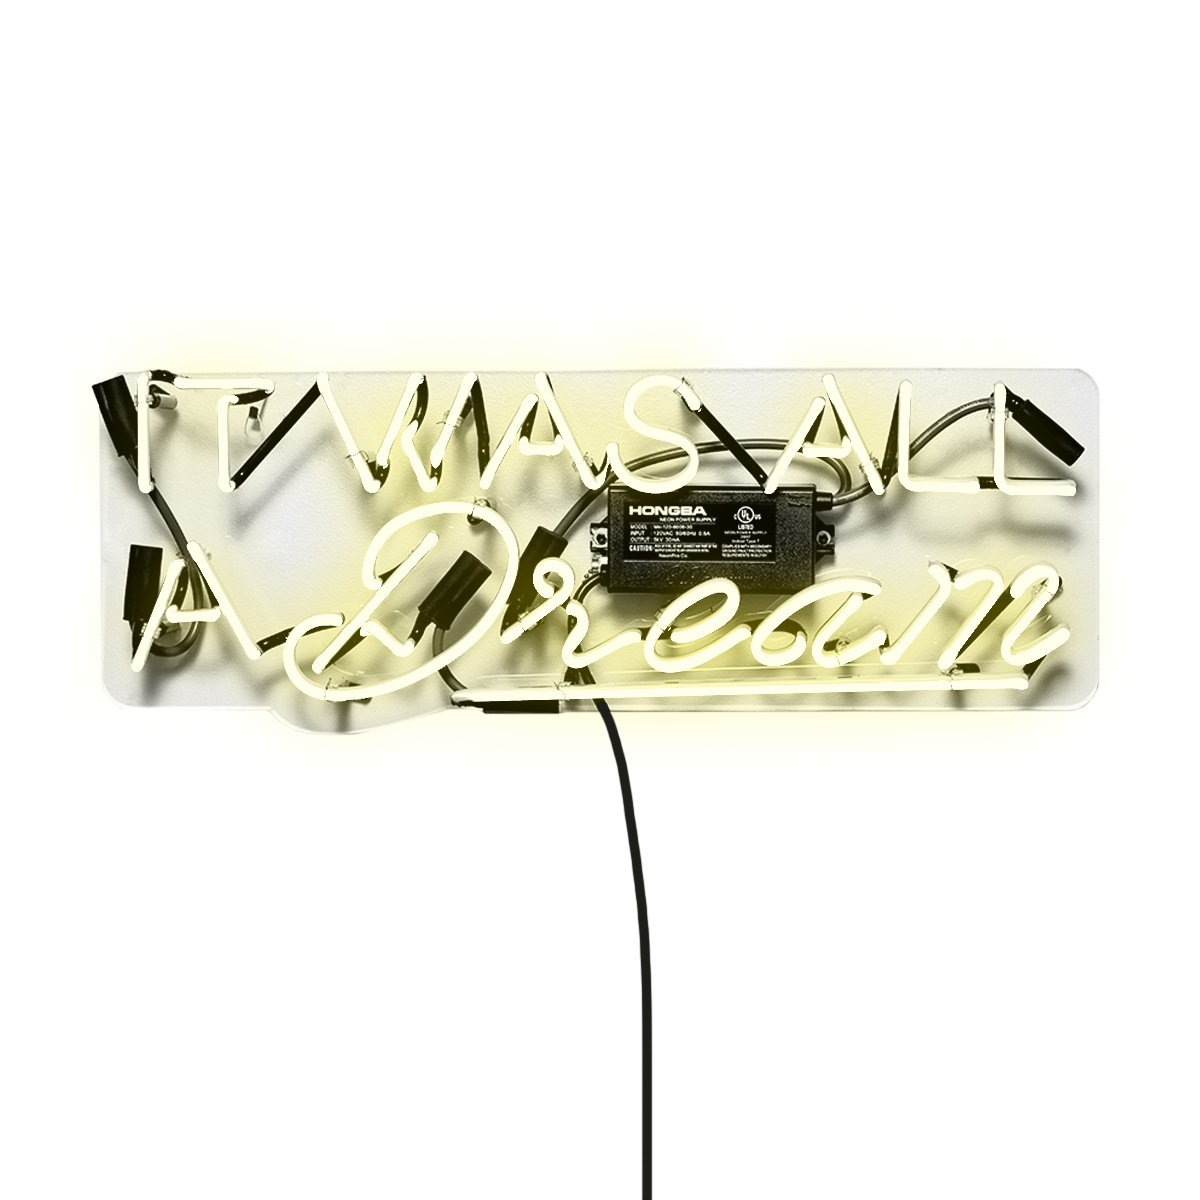 It Was All a Dream' Contemporary Fashion Neon Sign Art for Home Decor and Office. The Neons Sign Light Wall Decor Collection by The Oliver Gal Artist Co. Handmade Glass Tubing and Ready to Hang